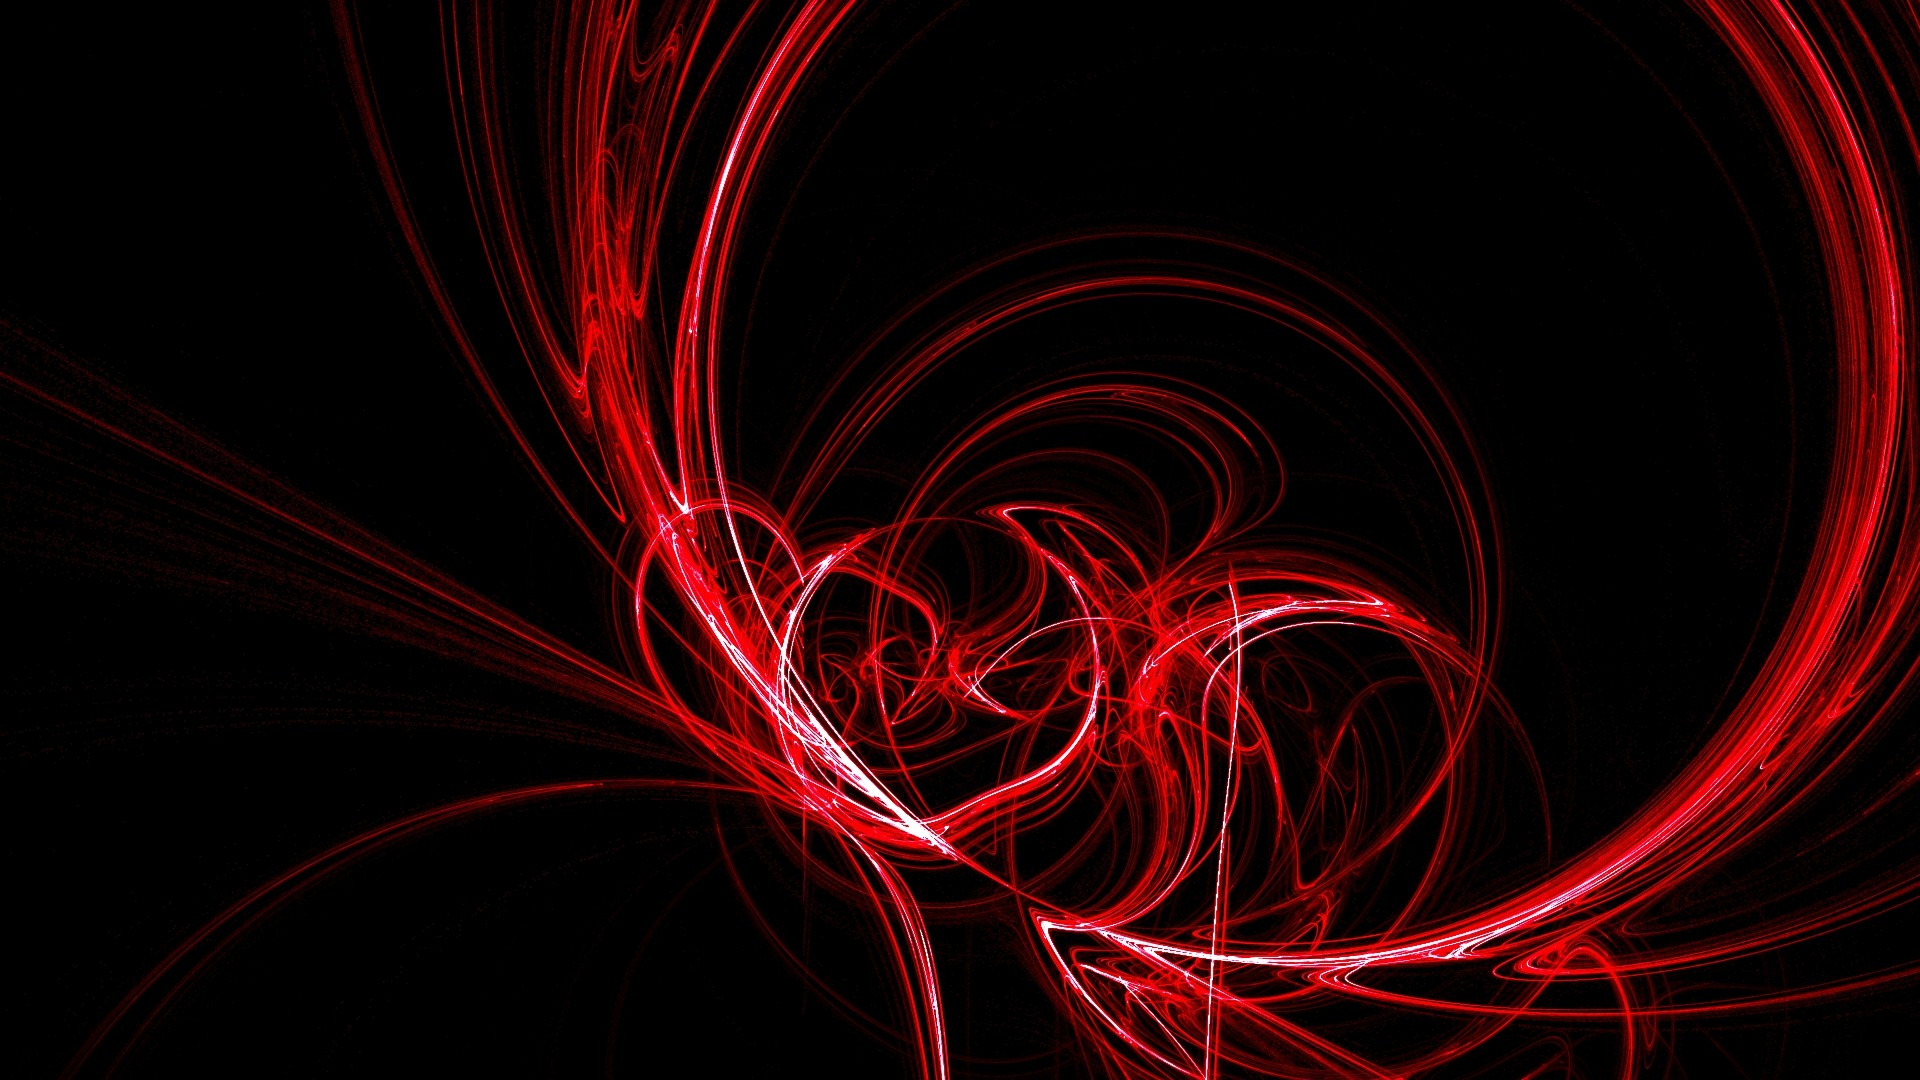 1920x1080 abstract wallpaper red images